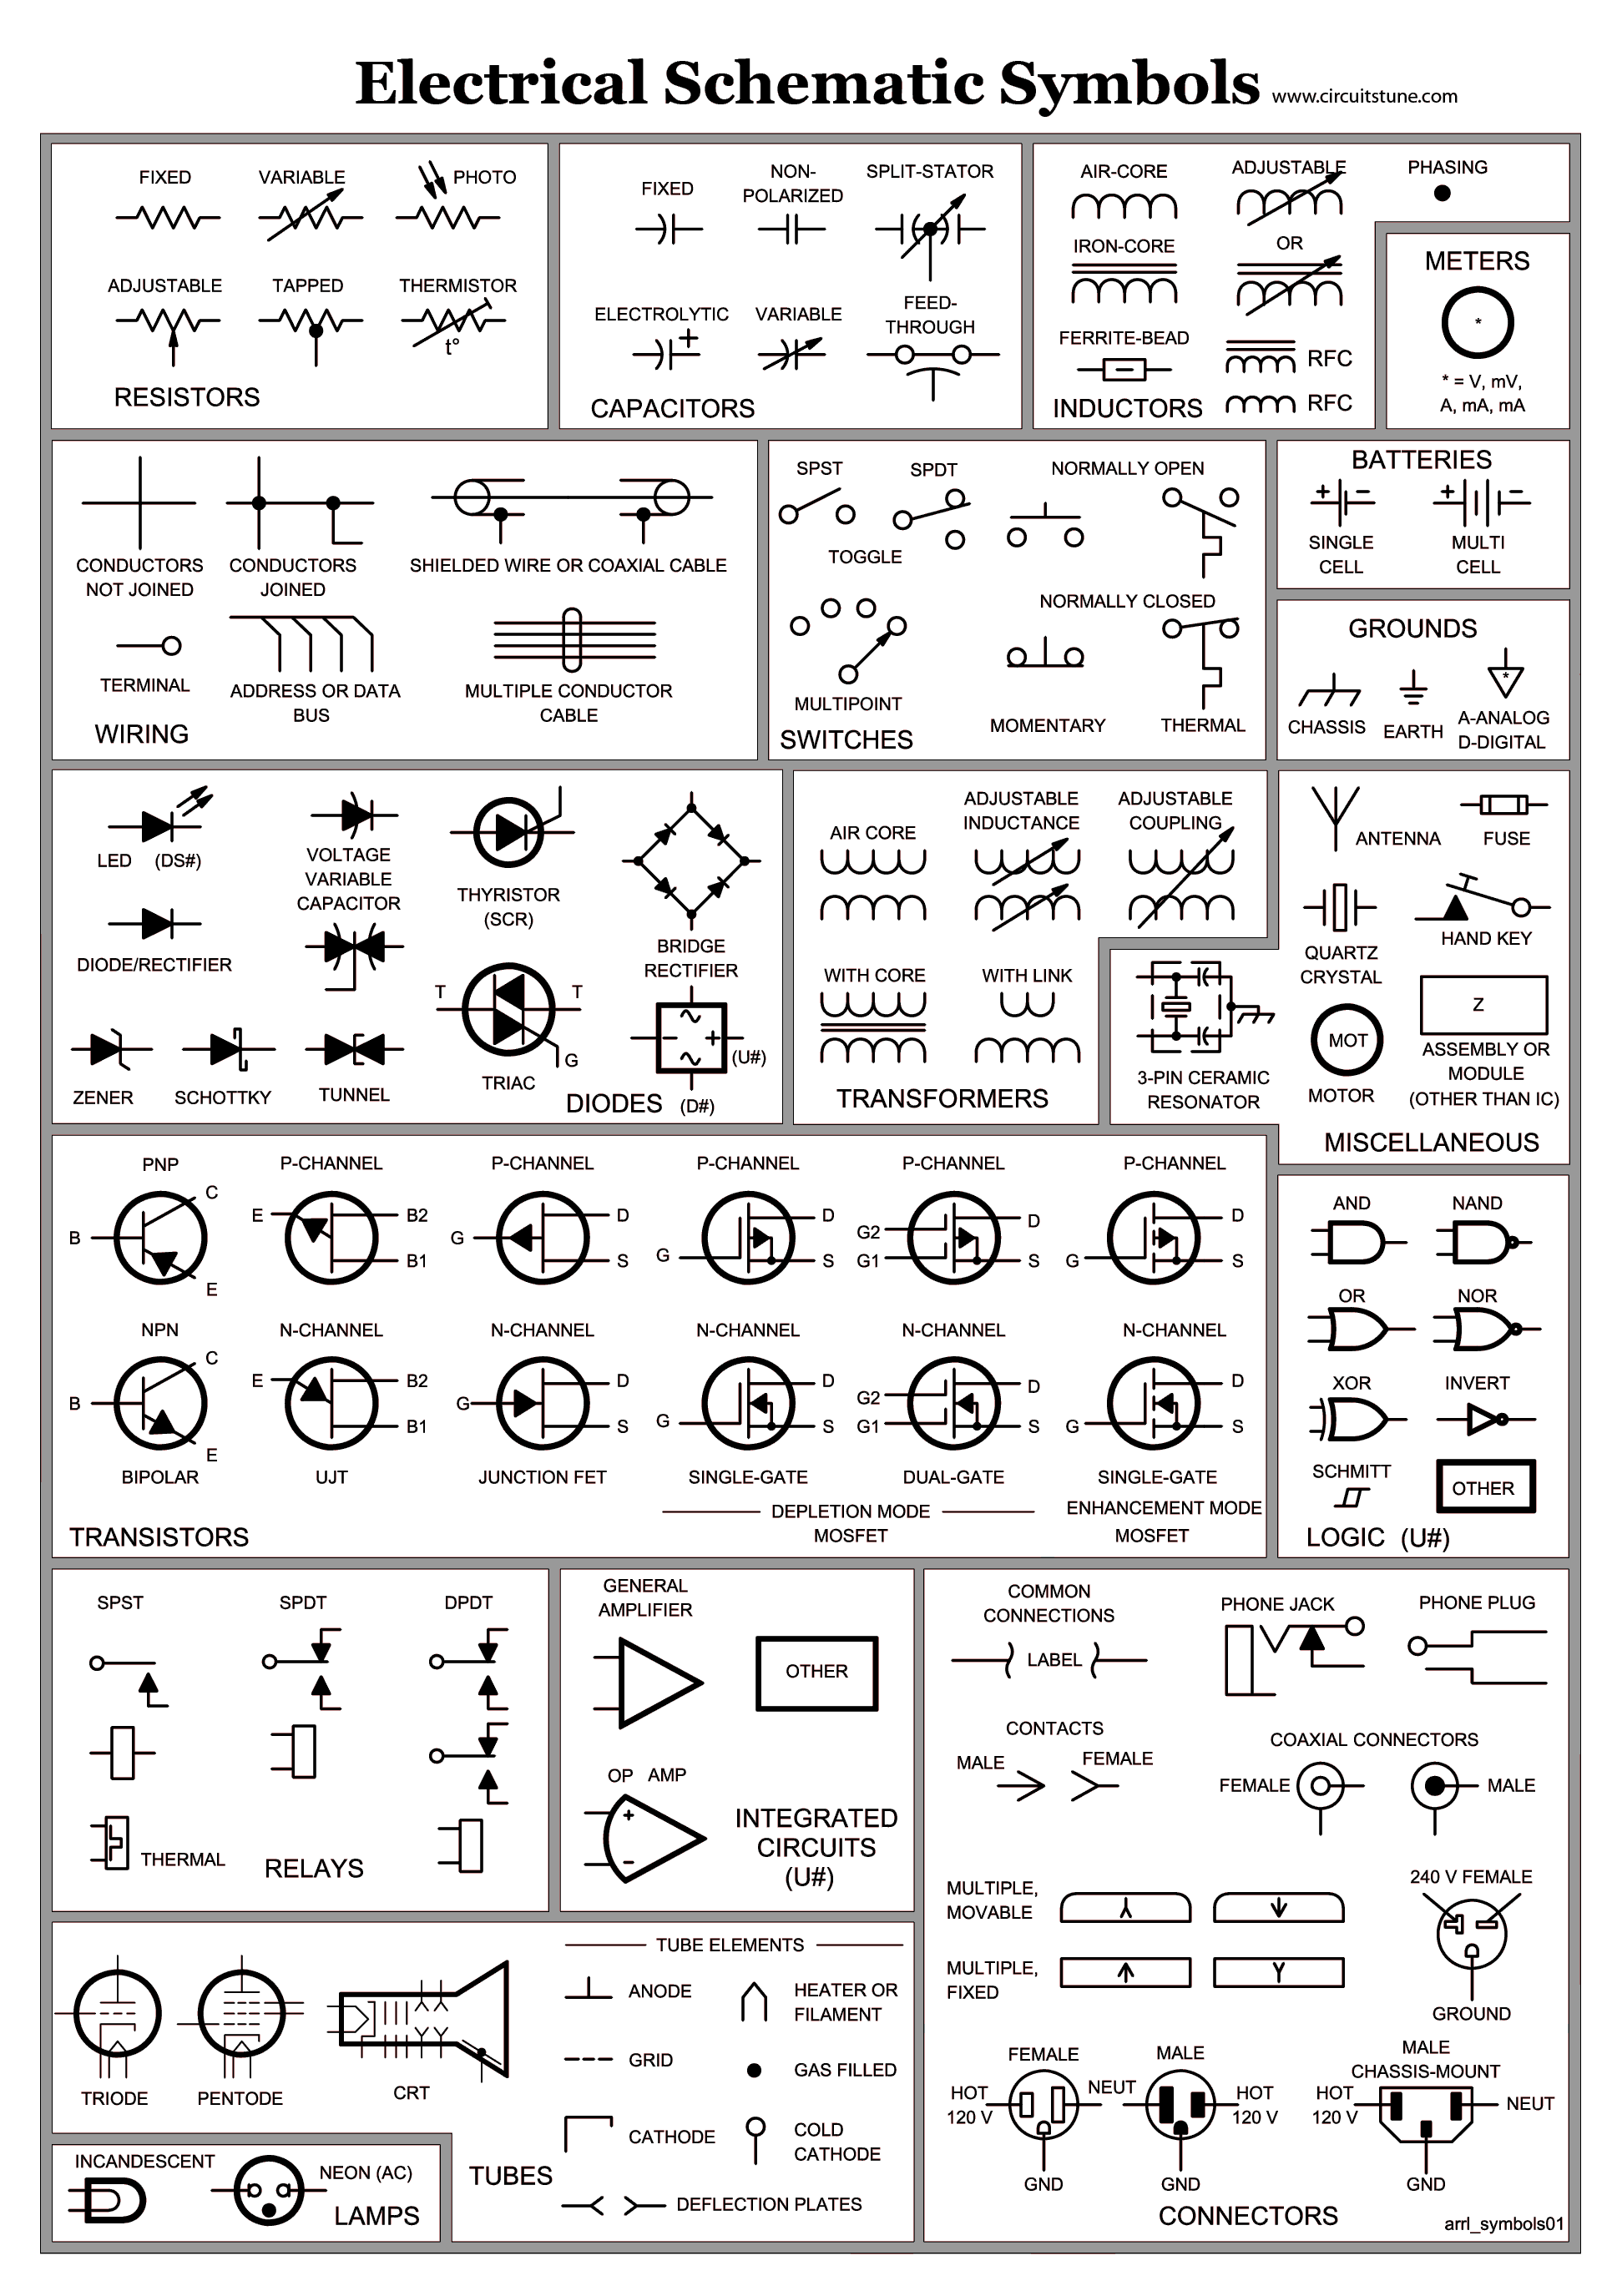 ohio medical air compressor wiring diagram electrical schematic symbols wire diagram symbols automotive electrical schematic symbols wire diagram symbols automotive wiring schematic